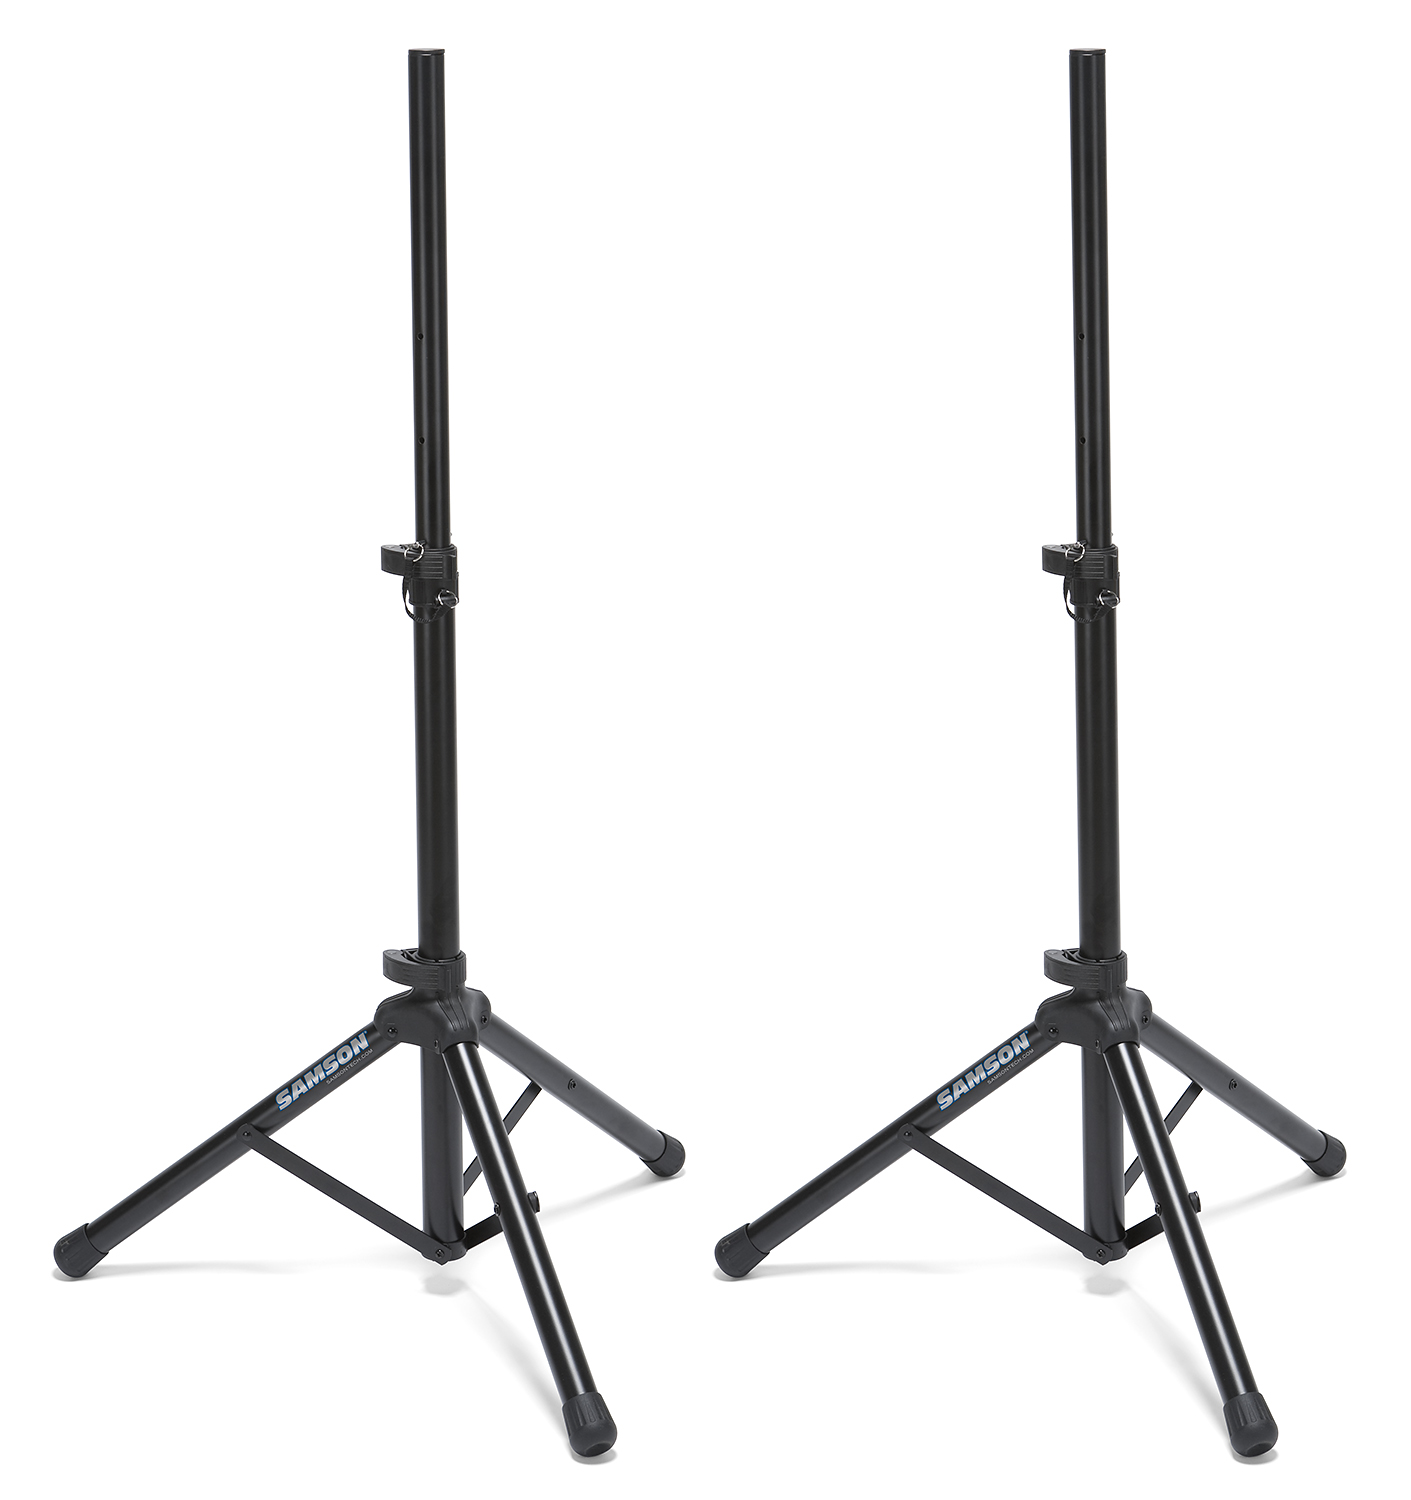 samson-sp50p-speaker-stands-pair.jpg